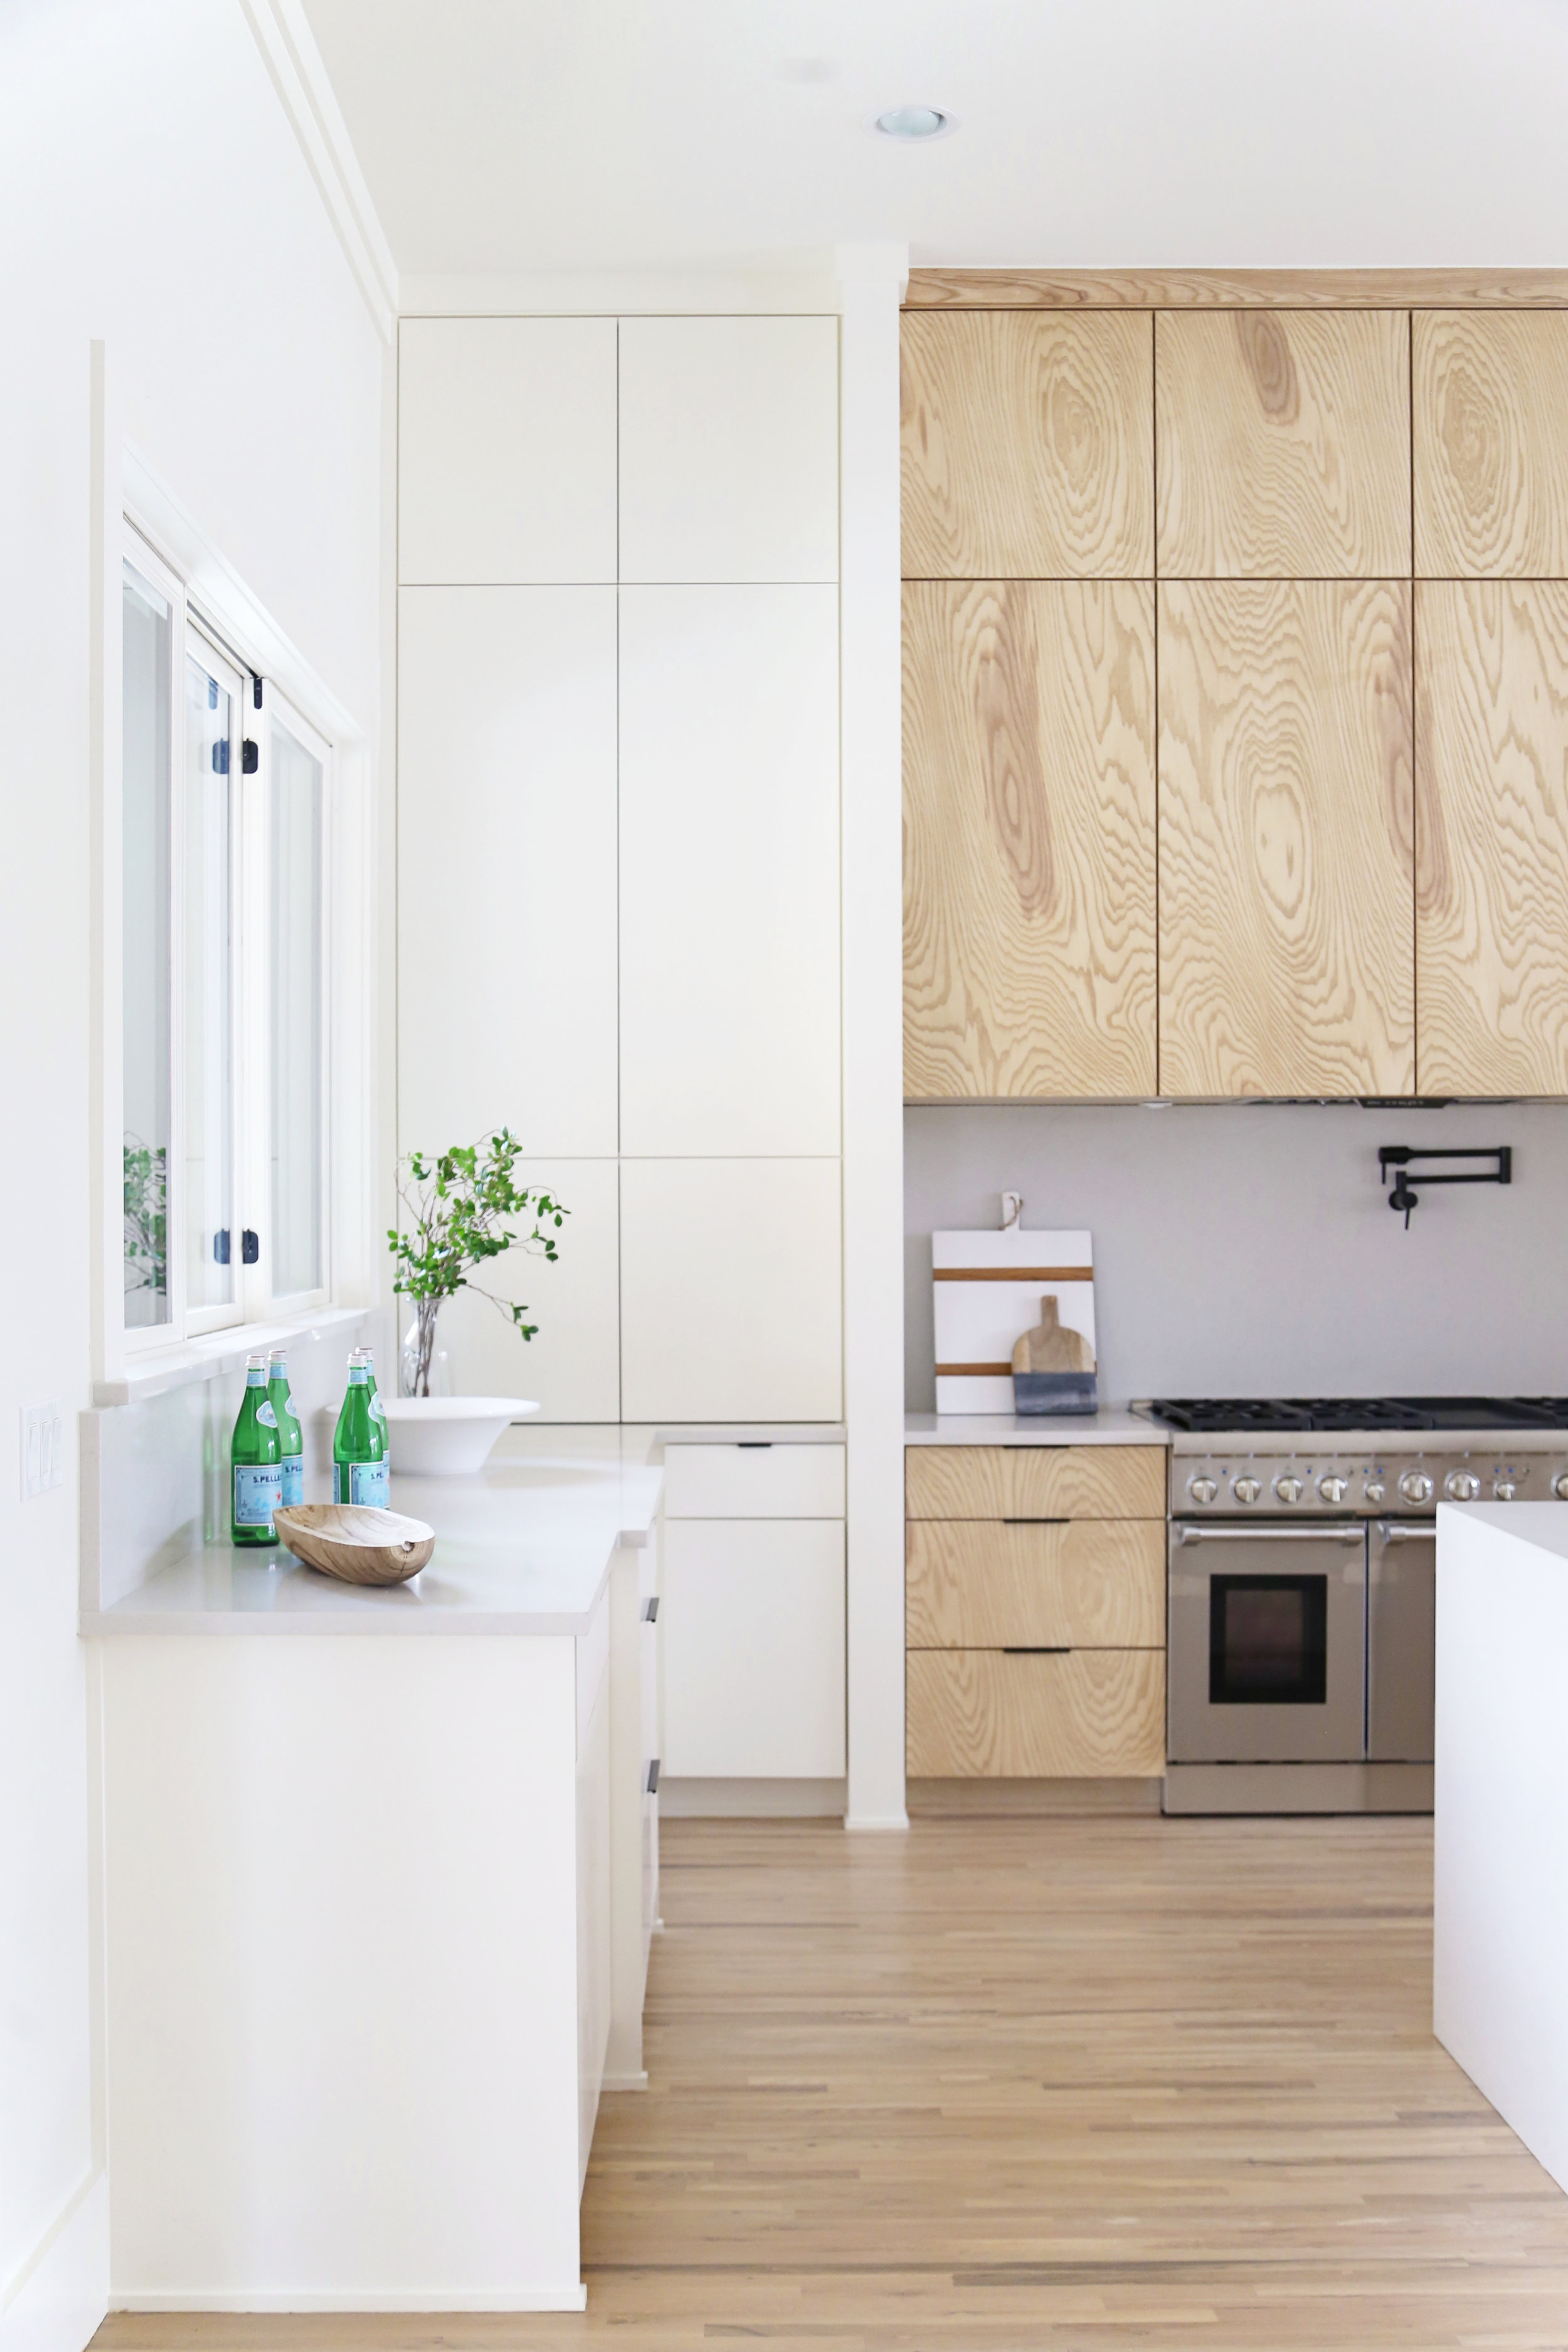 Interior Design - After our initial visit we will enter the space planning phase of your project, taking into account the public or private nature of the space and how you (or others) will be using it. You might want to get rid of all of your things and start from scratch whereas others will want to keep some of their items. While this is an opportunity to start over, we embrace the idea that all space planning involves a balance between the client's past, which is as important as the creation of their future. After the general scope is formed based on your desires and budget, we will formulate a design plan to accommodate your goals. Once the design plan is approved, we will begin the ordering process and schedule any contract work. The final stage is installation of the furniture and/or whatever parts of the project have been agreed to during presentation of the project. We like to install the furniture once it has all arrived and we have had a chance to fully inspect the pieces. Once all furnishings and accessories have arrived, we will schedule a date for installation.